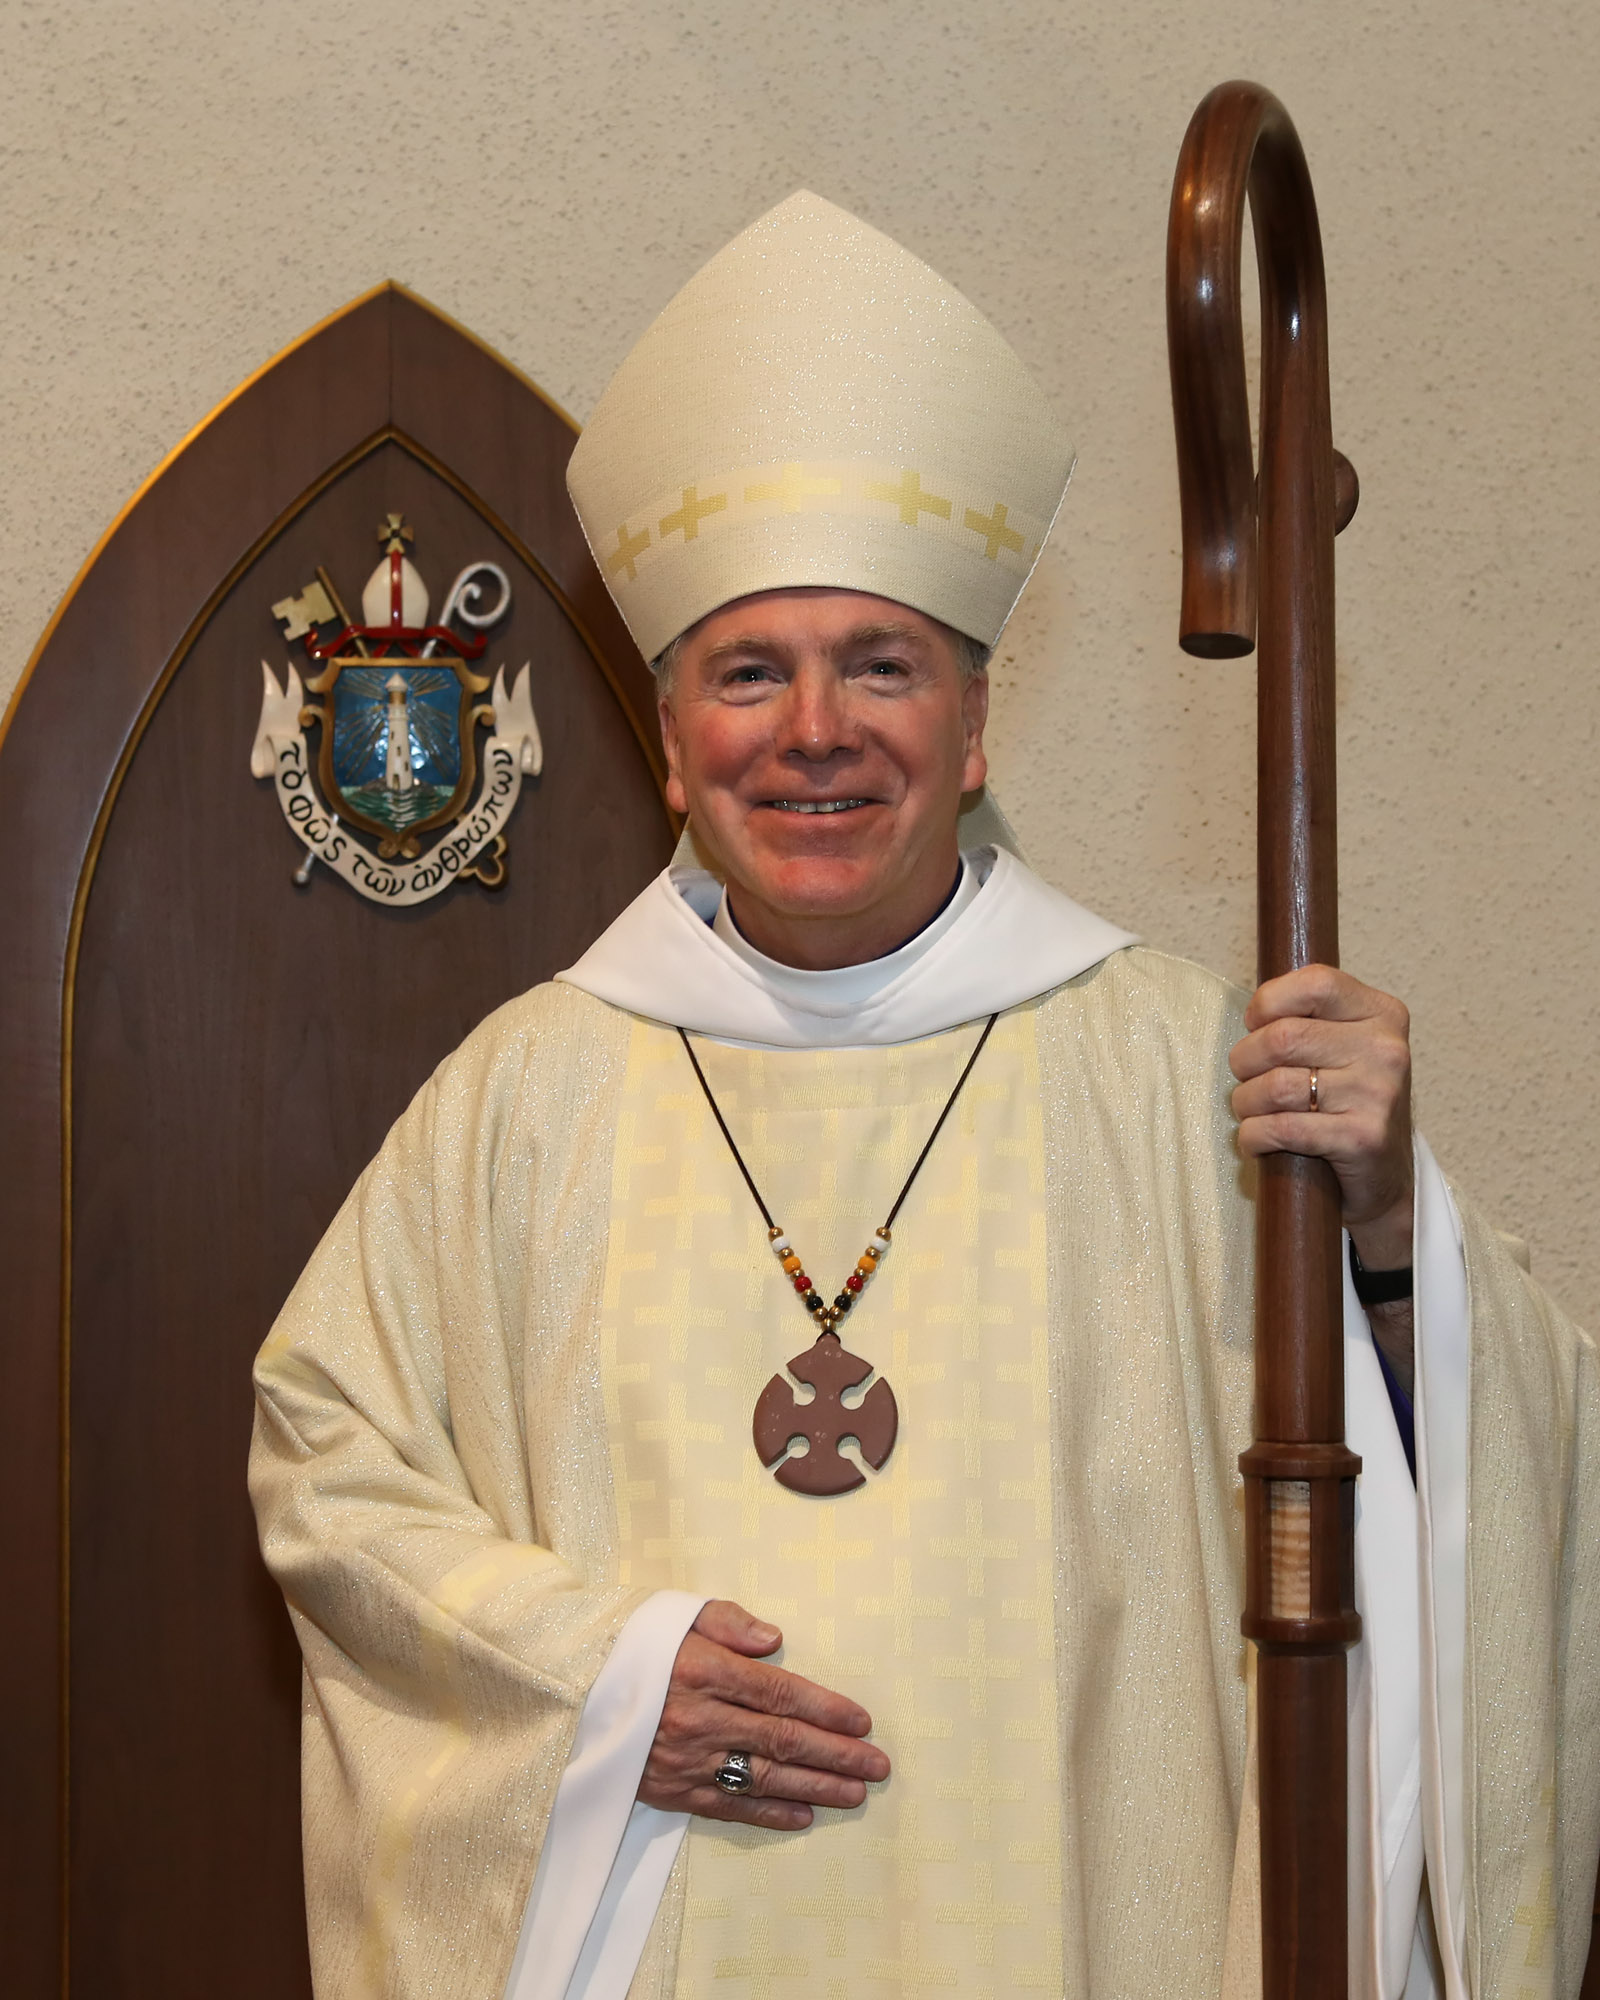 The Right Reverend Dr. Douglas E. Sparks VIII Bishop of the Diocese of Northern Indiana